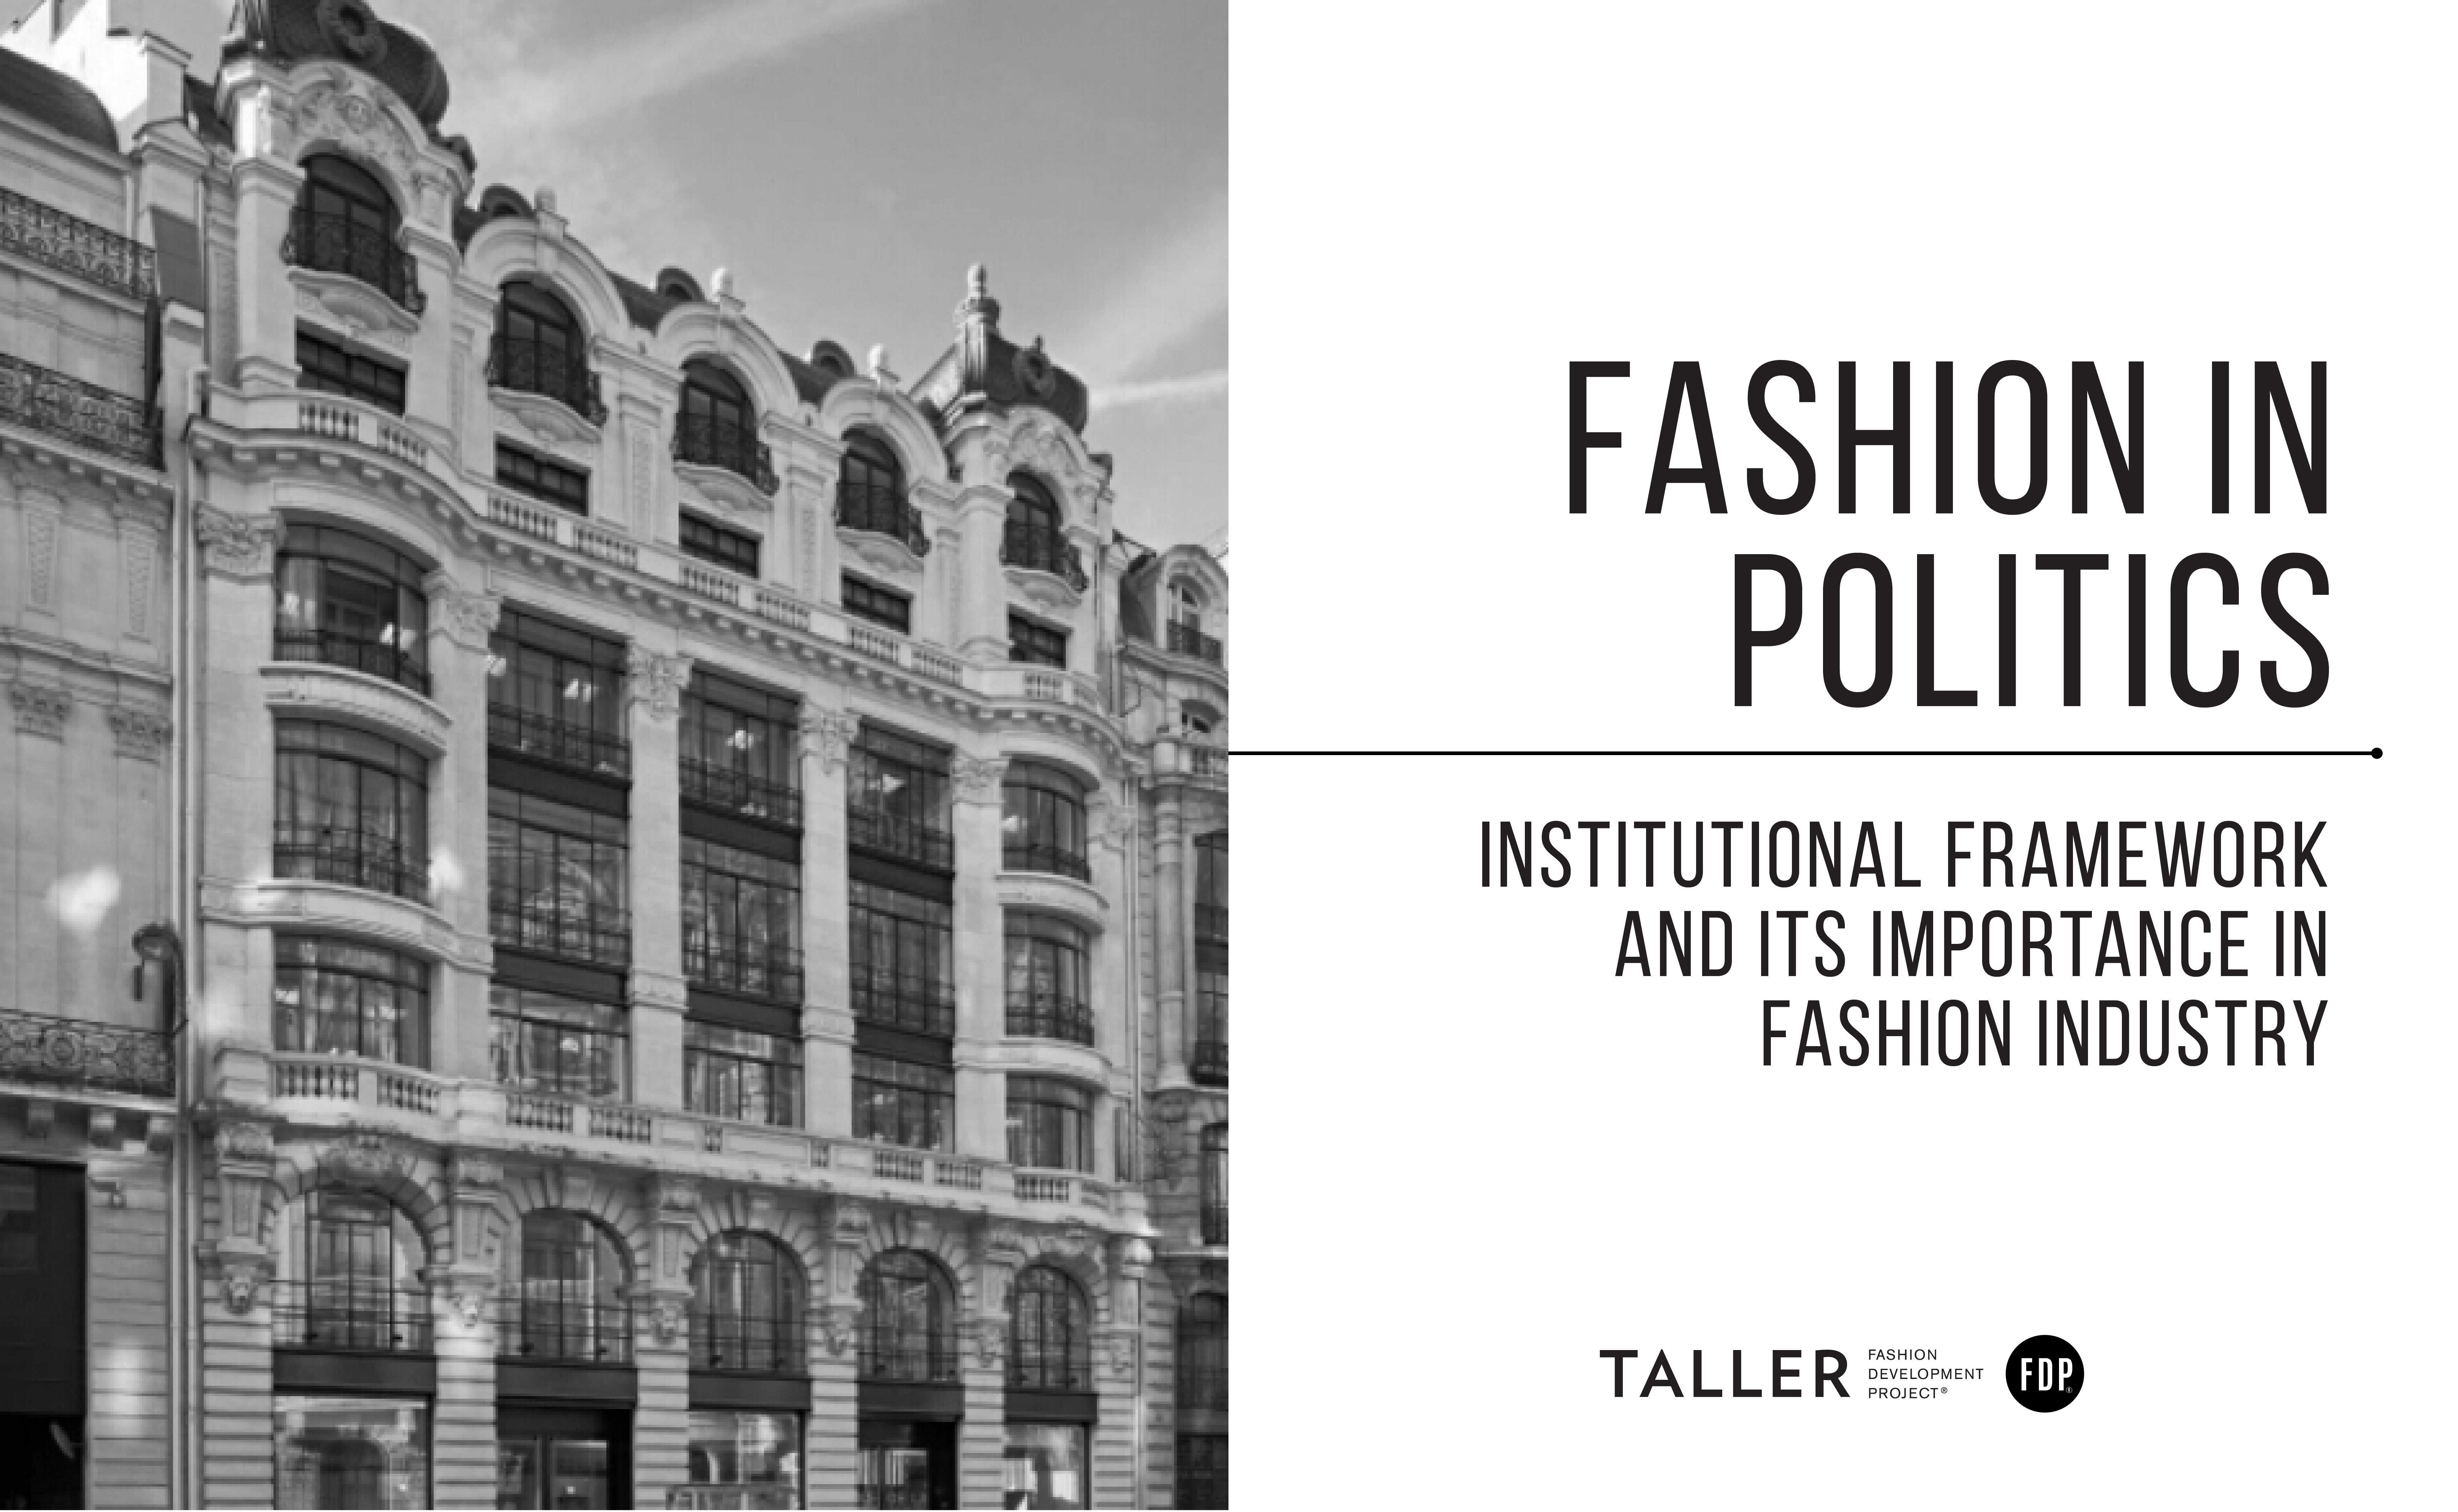 Fashion in Politics: Institutional framework and its importance in fashion industry.